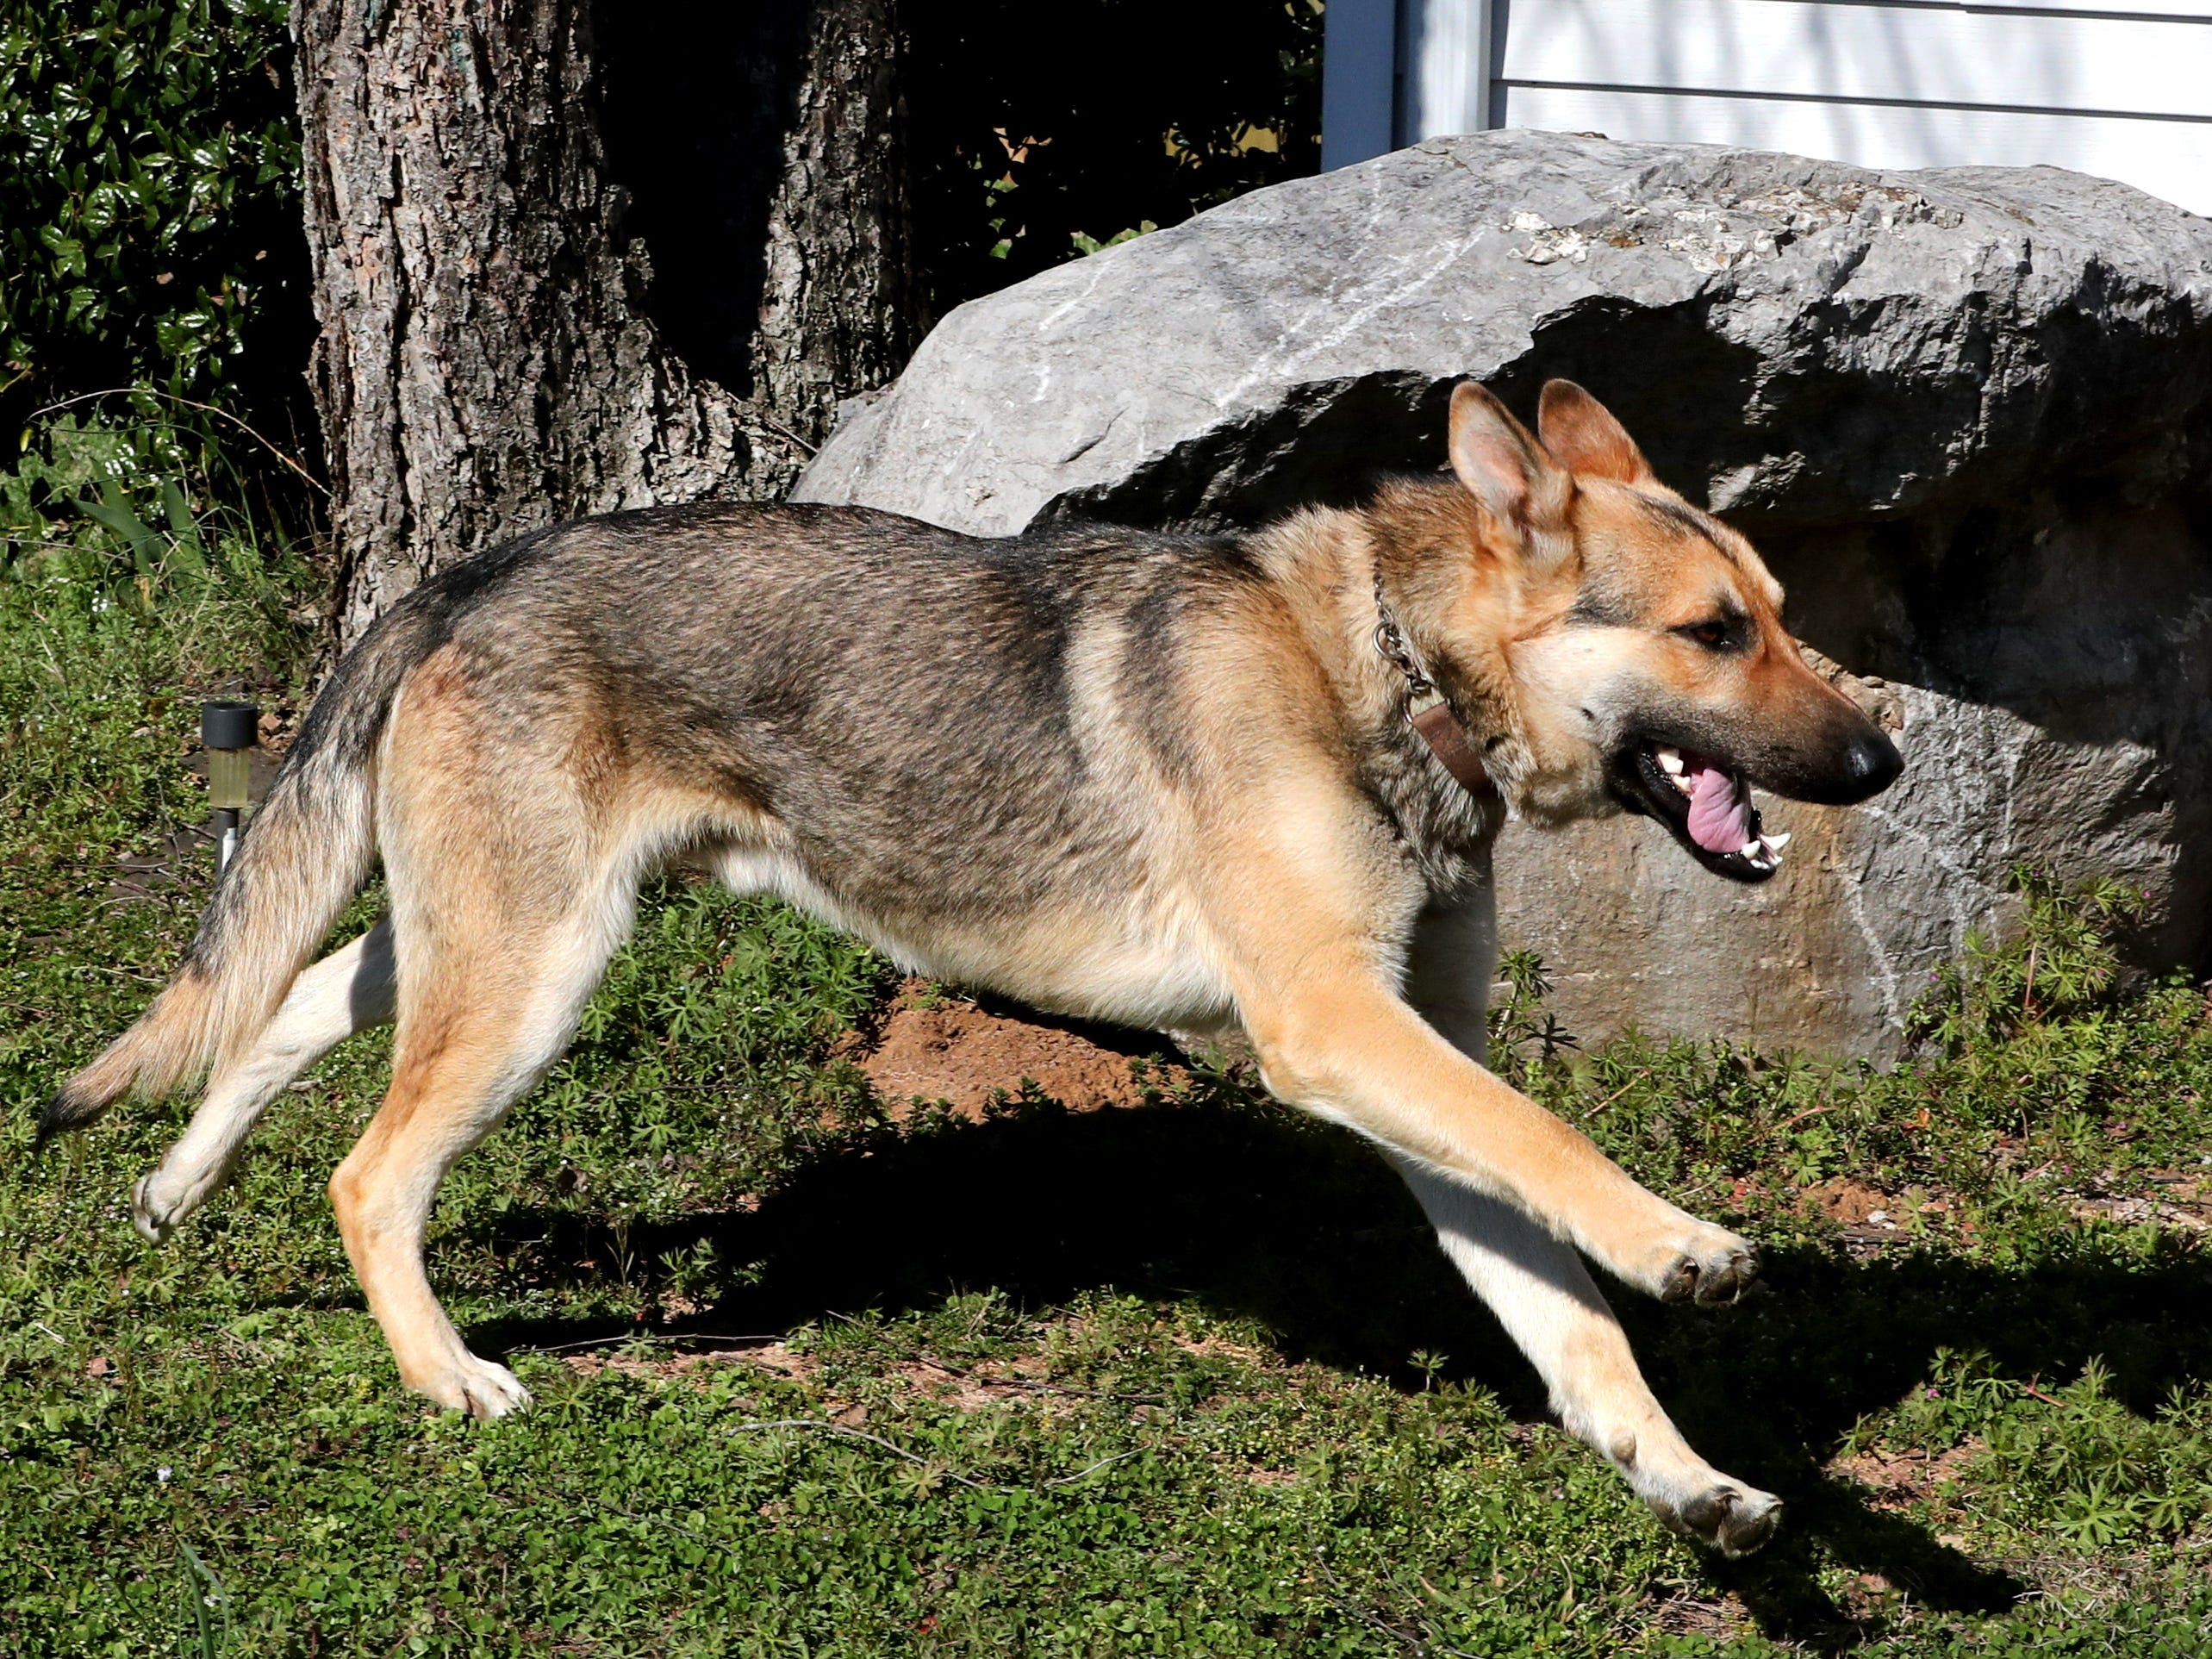 Goblin, the White family's missing dog runs around their yard on Tuesday, March 19, 2019, after Goblin was returned to the family after being officially reported missing since March 10.